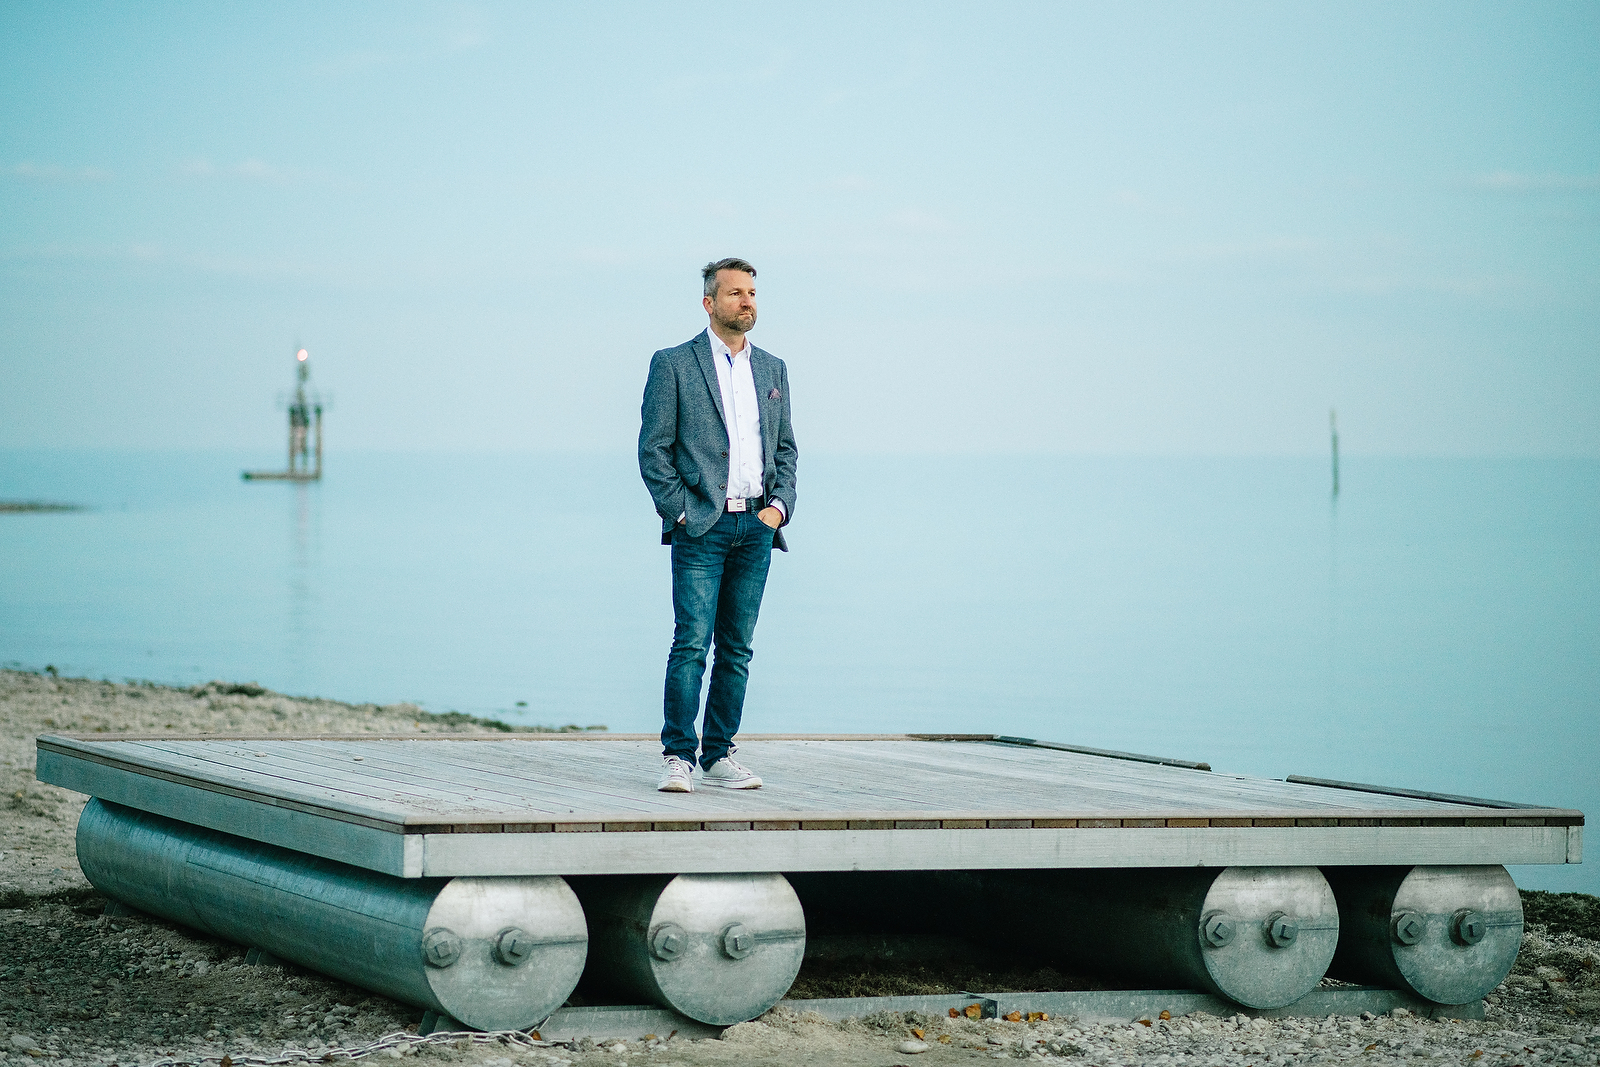 Fotograf Konstanz - Business Portrait Shooting at Lake Constance  - 13 -